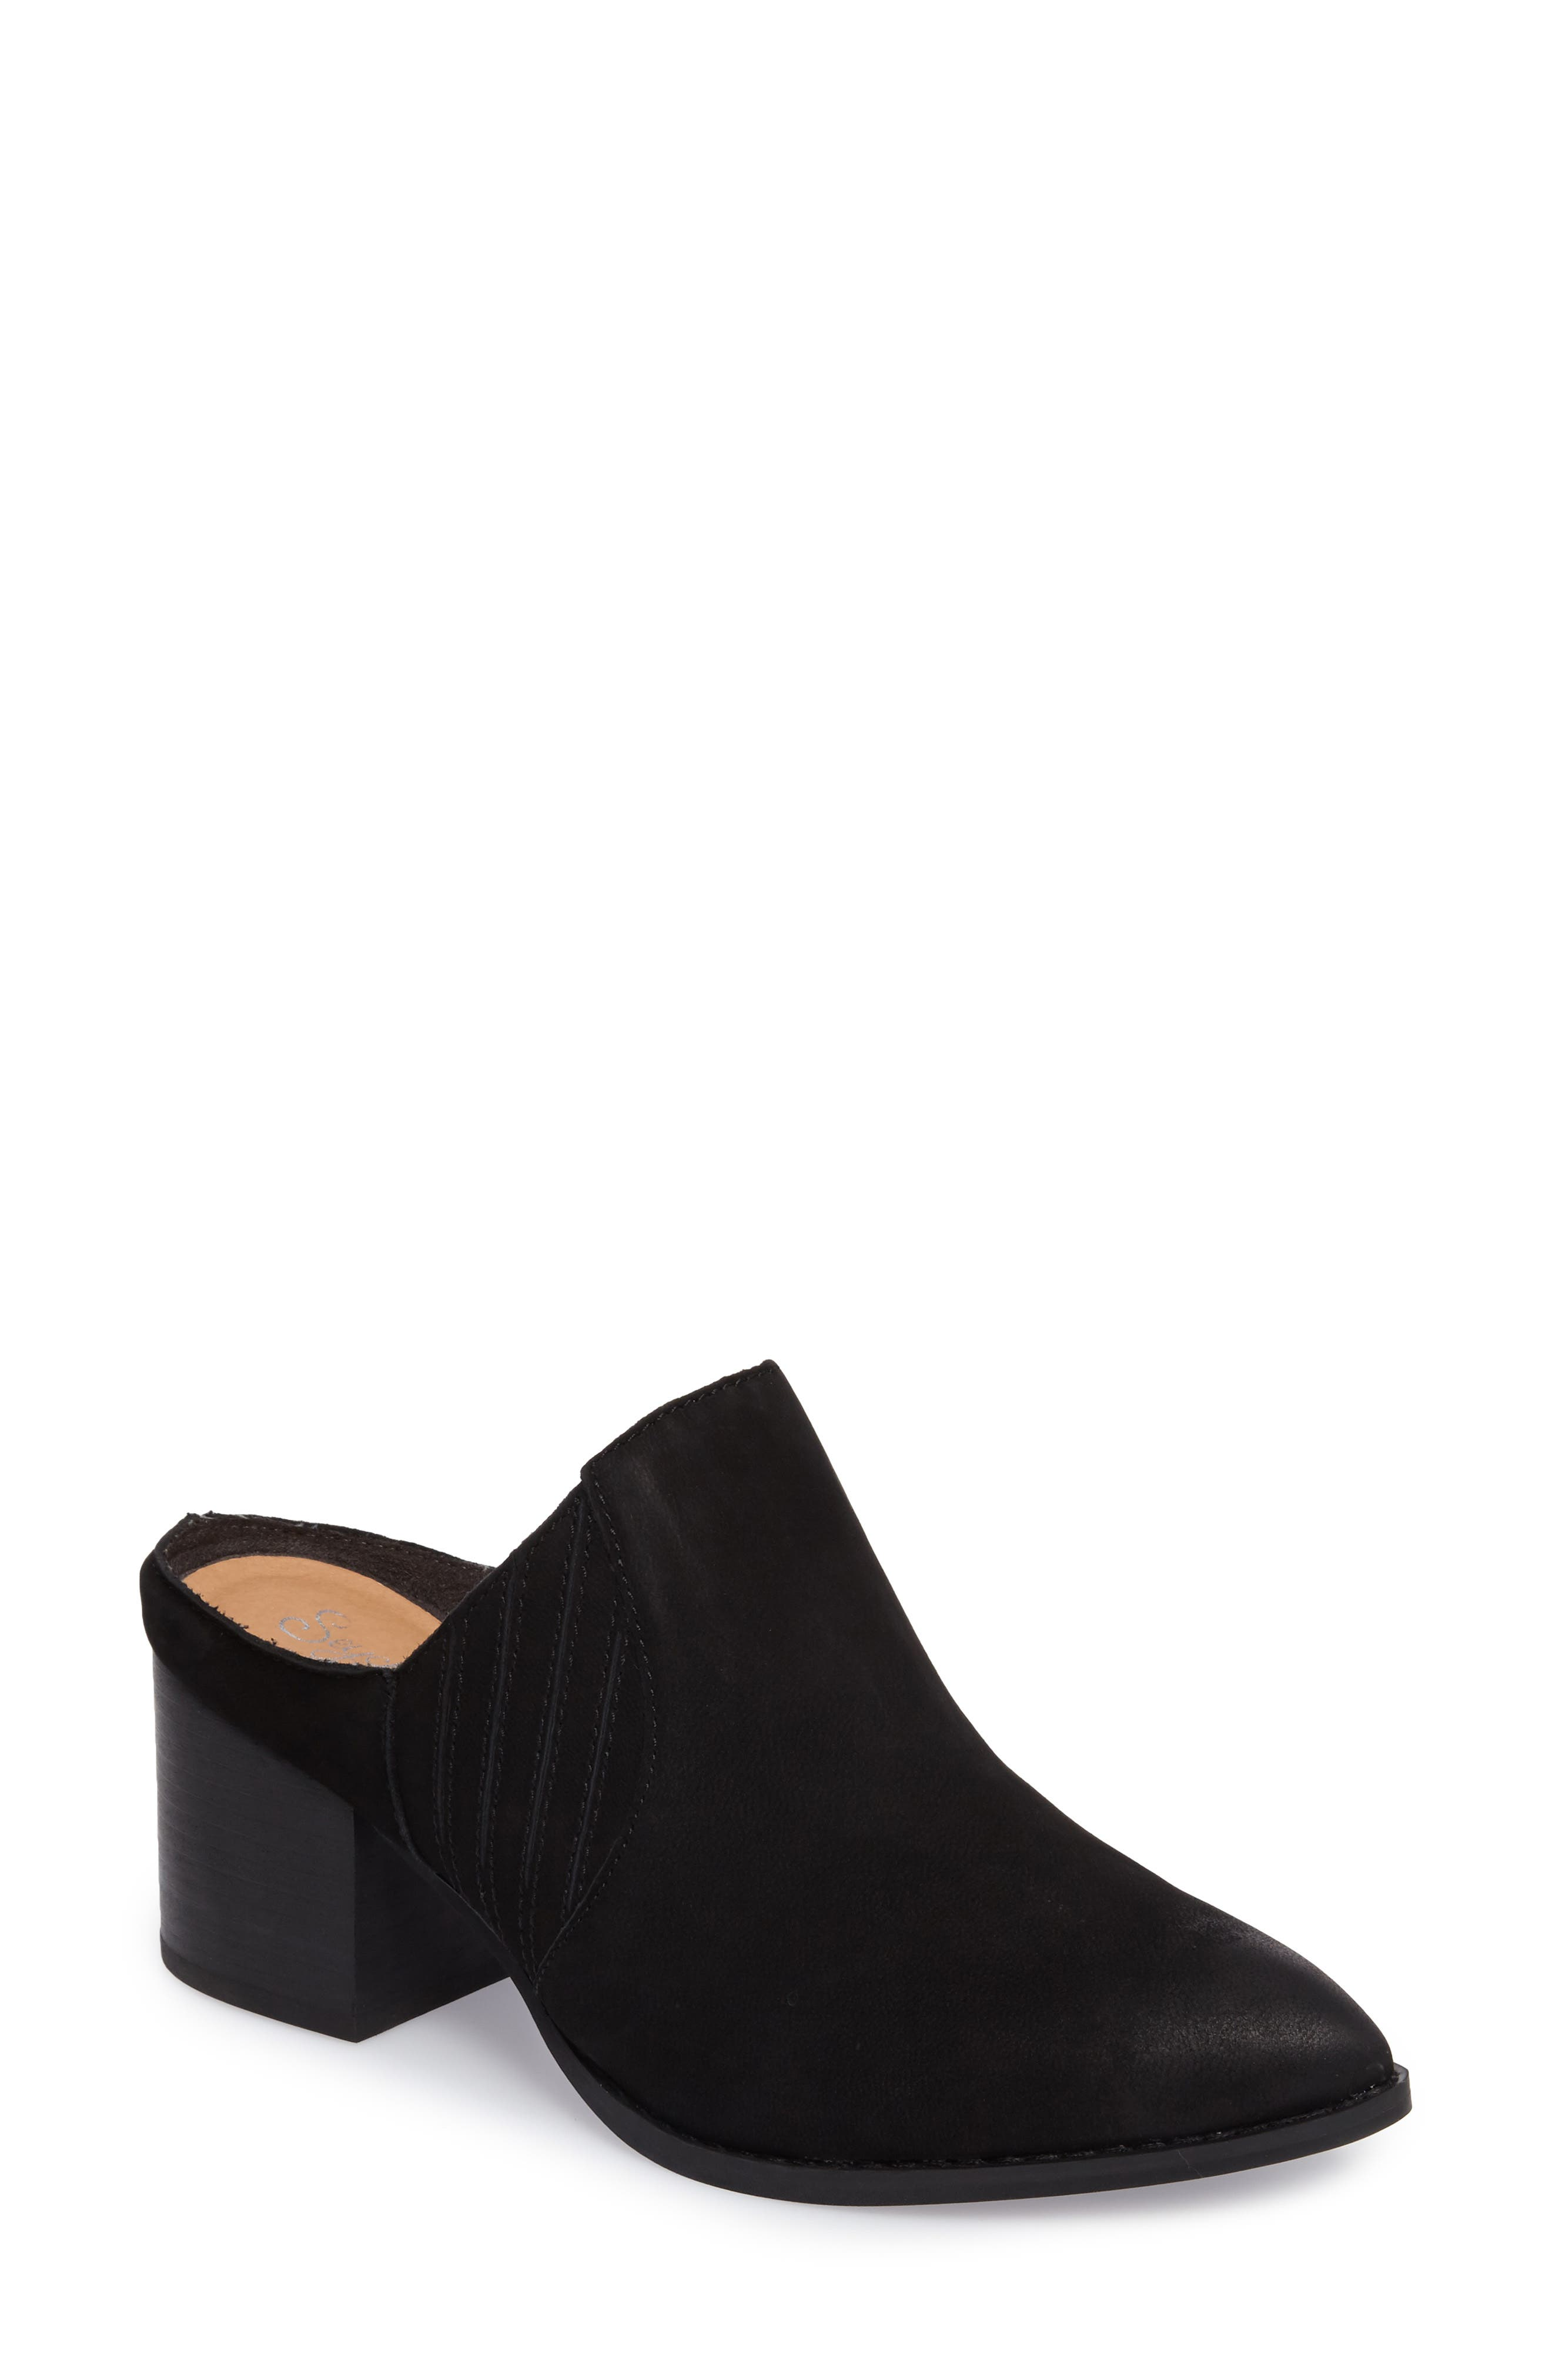 Dialogue Pointy Toe Mule,                         Main,                         color, 001